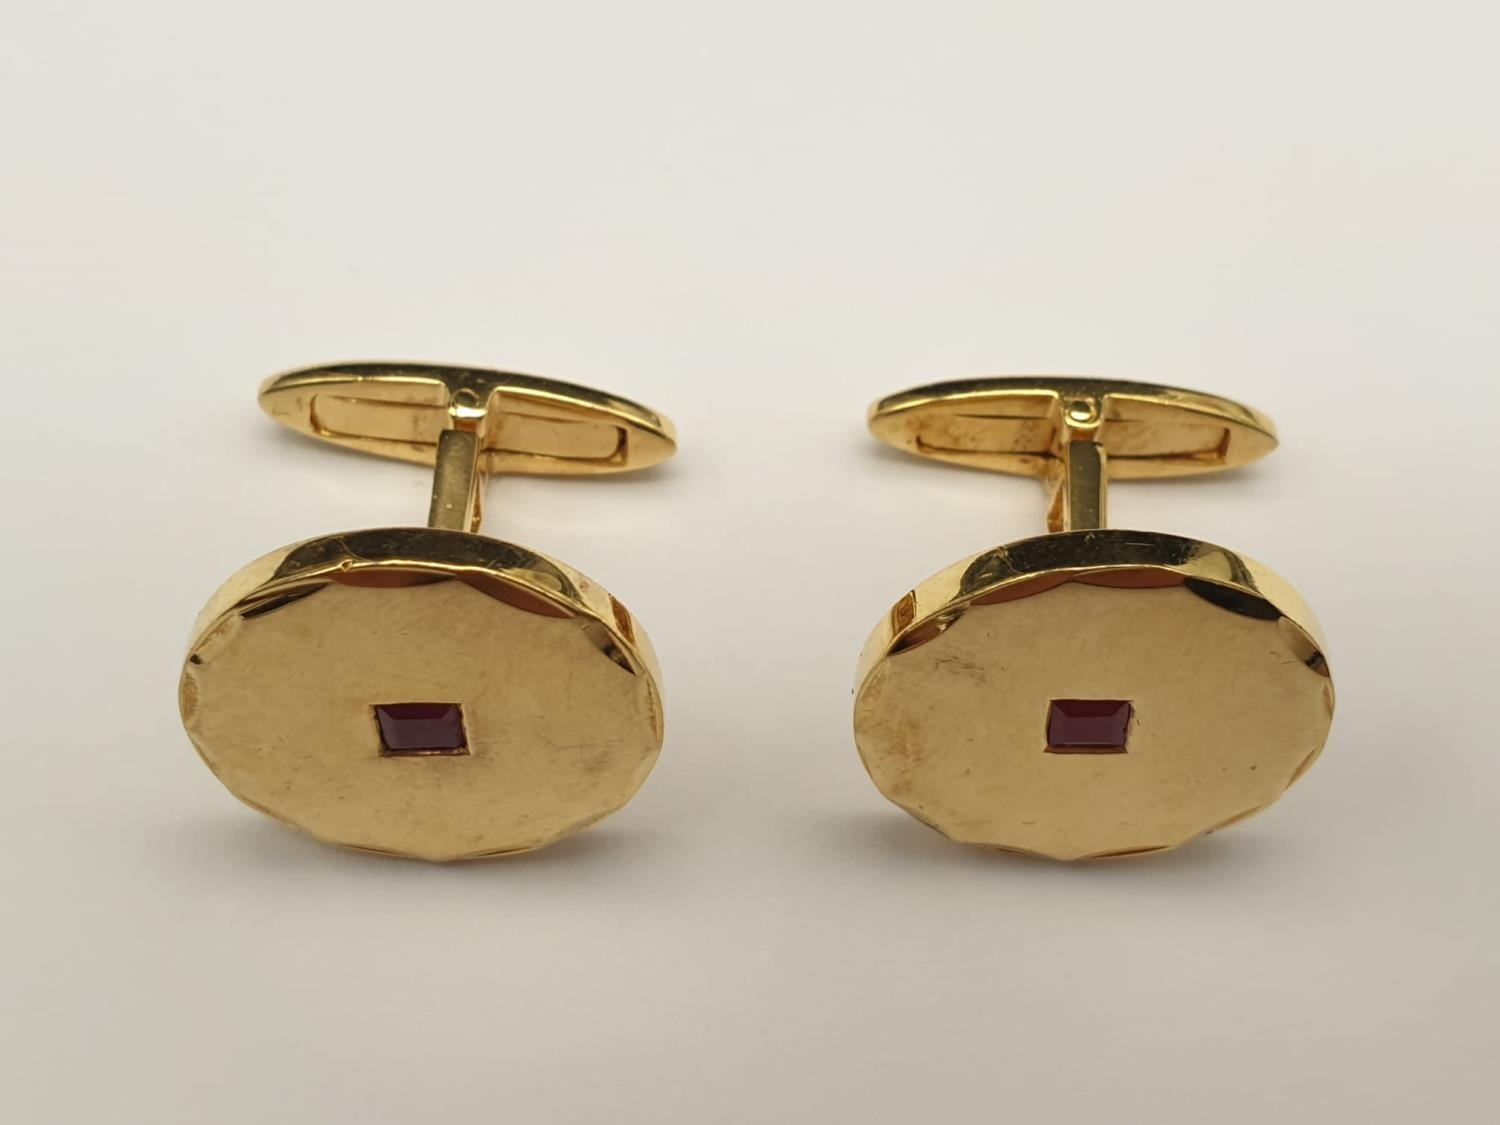 A Pair of 14k Yellow Gold and Ruby Cufflinks. 11.83g - Image 2 of 5